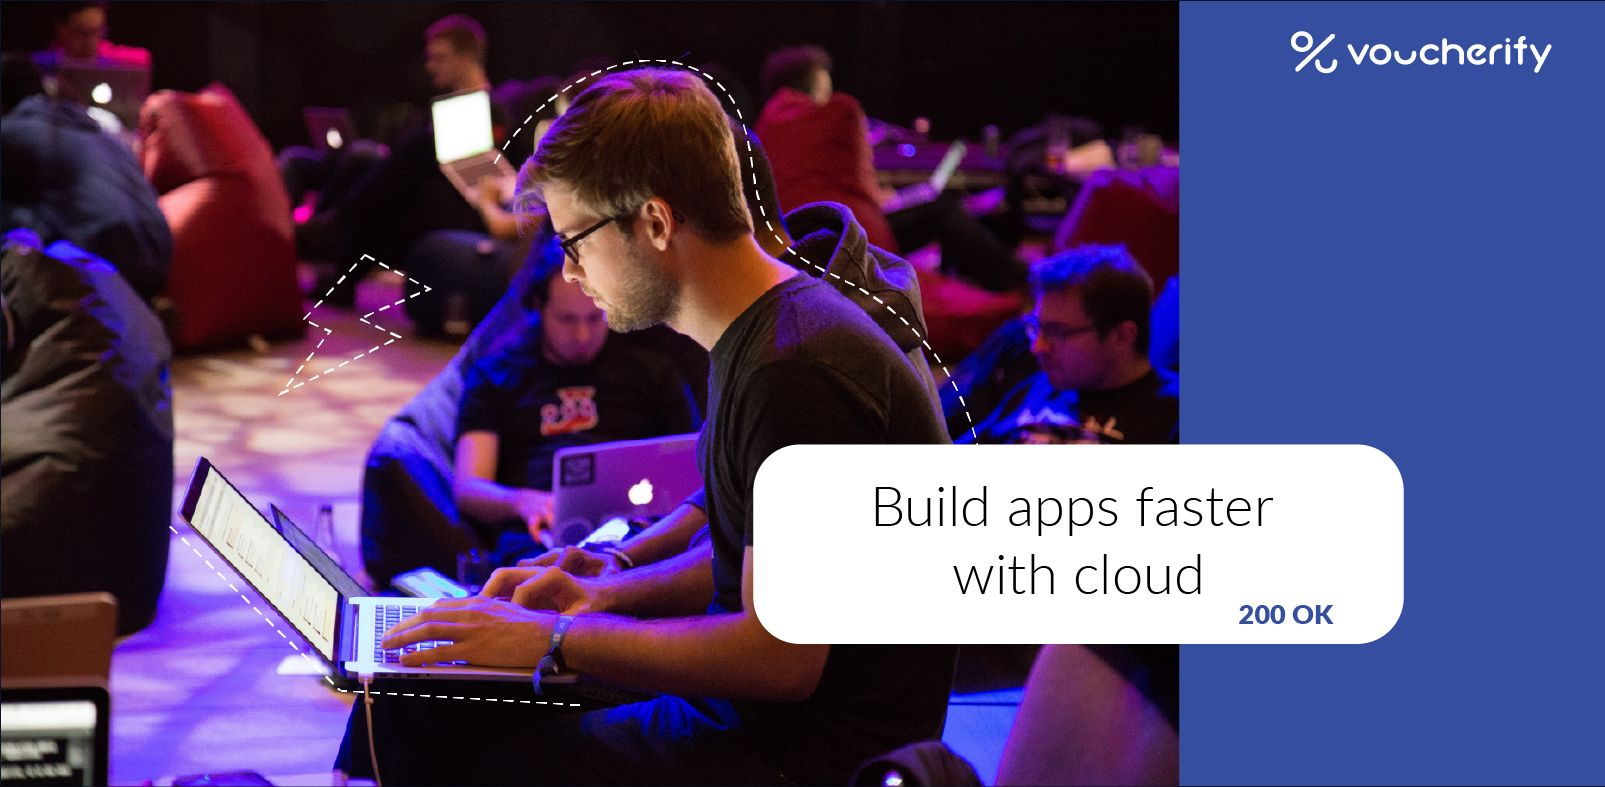 How to use the cloud to build applications faster?